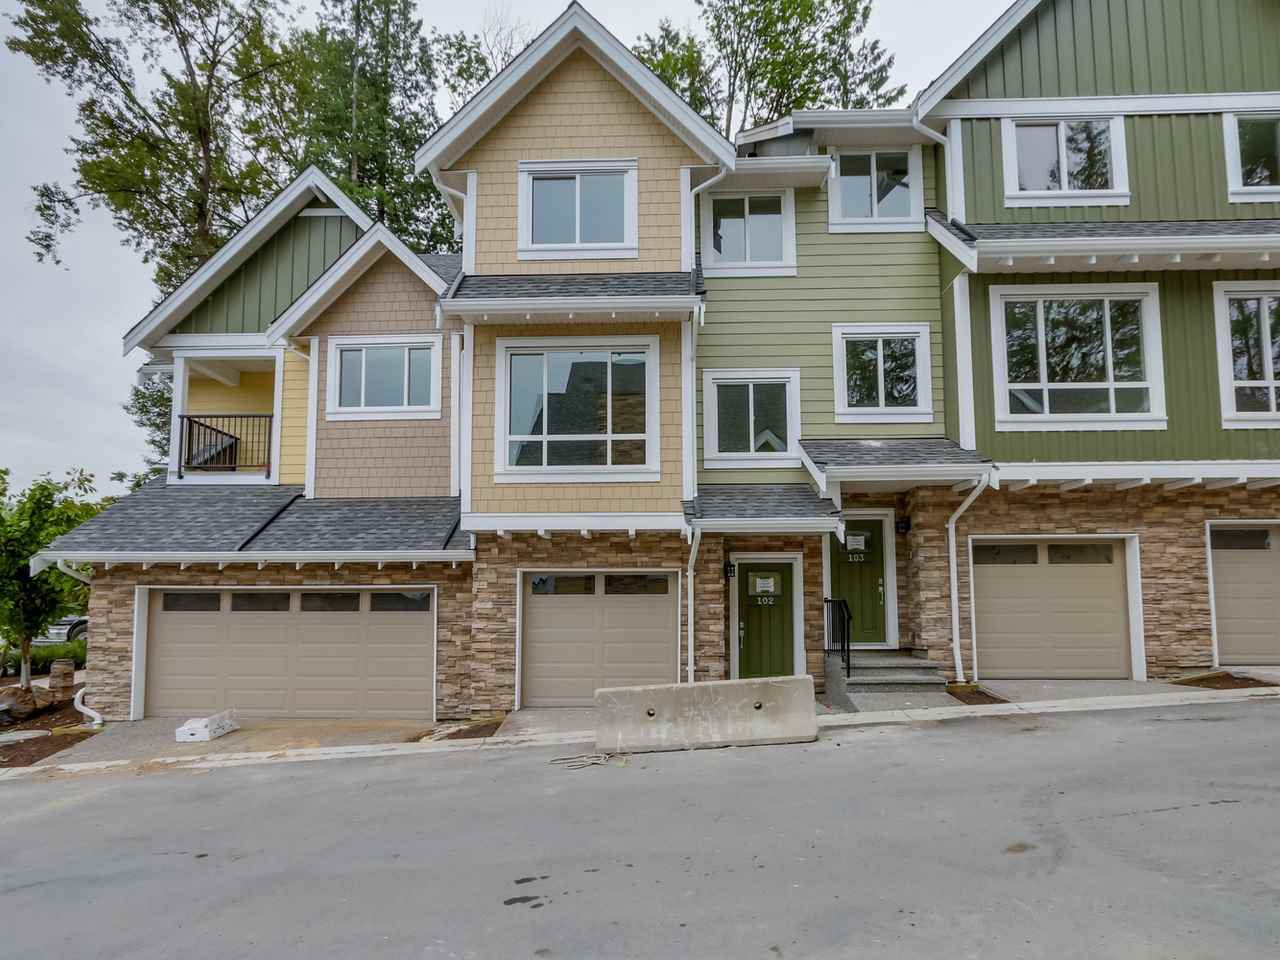 """Main Photo: 105 1405 DAYTON Street in Coquitlam: Burke Mountain Townhouse for sale in """"ERICA"""" : MLS®# R2097438"""